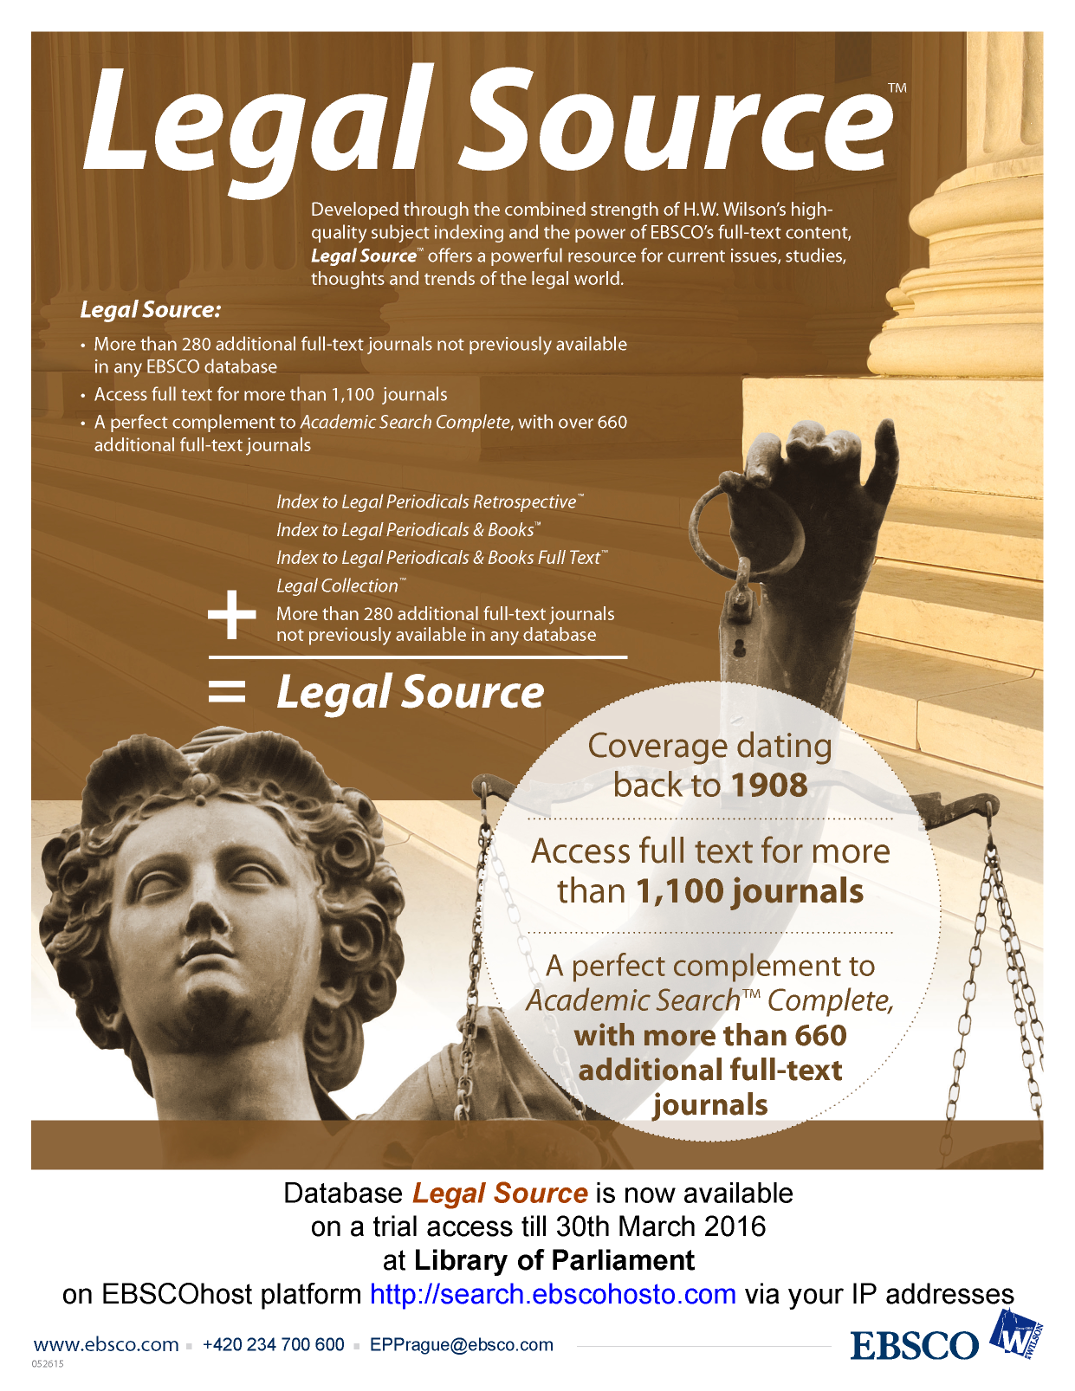 Legal Source Online